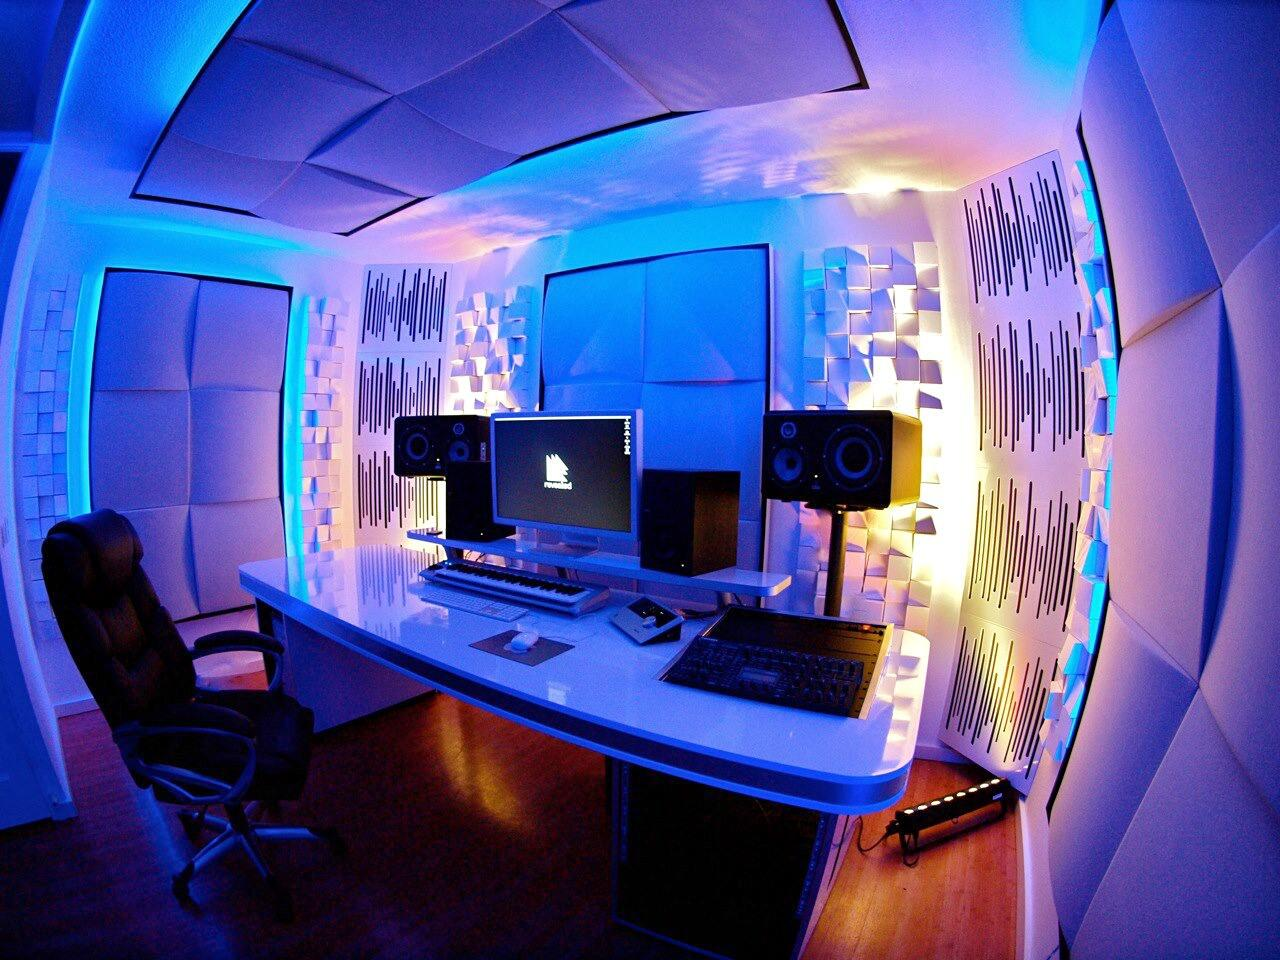 Hardwell On Twitter Quot Finally The New Hardwell Studio Is